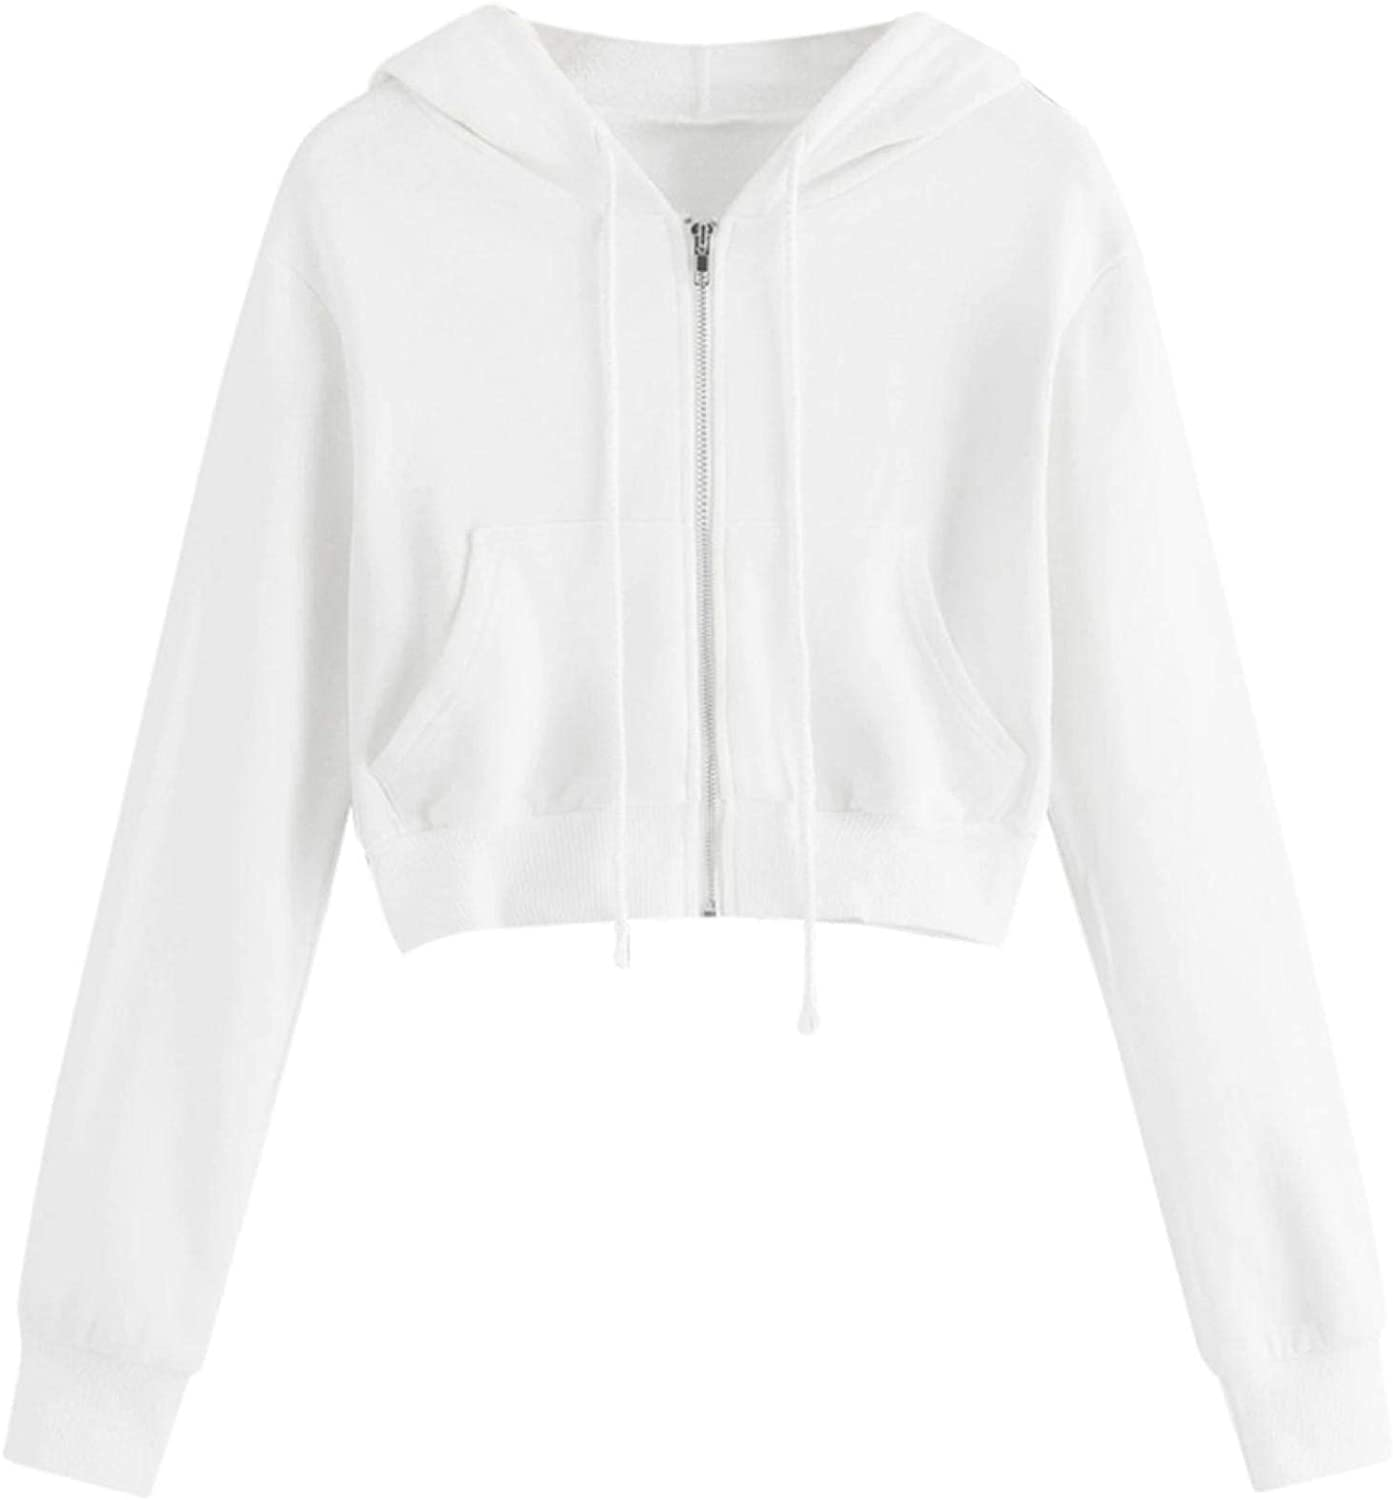 Cropped Hoodies for Teen Girls